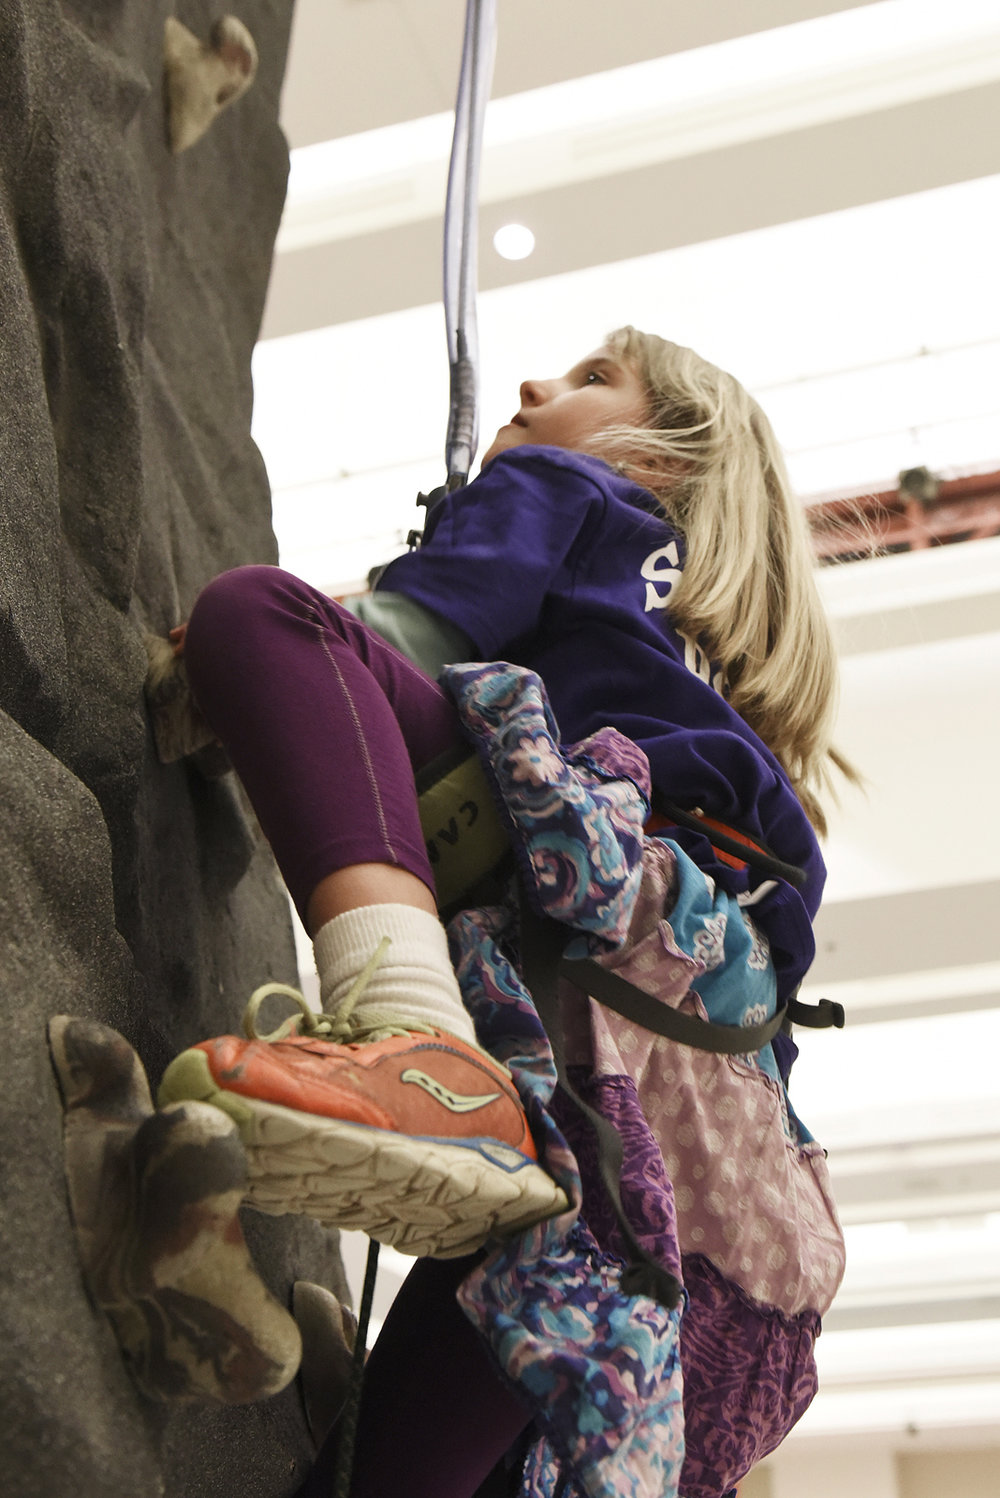 ERICA MILLER / GAZETTE PHOTOGRAPHER  Emily Cetnar, 7-years-old of Scotia, climbs the rock climbing wall at Damien Rock Wall booth during the Adirondack Sports Summer Expo at the Saratoga Springs City Center on Saturday afternoon, March 18, 2017.